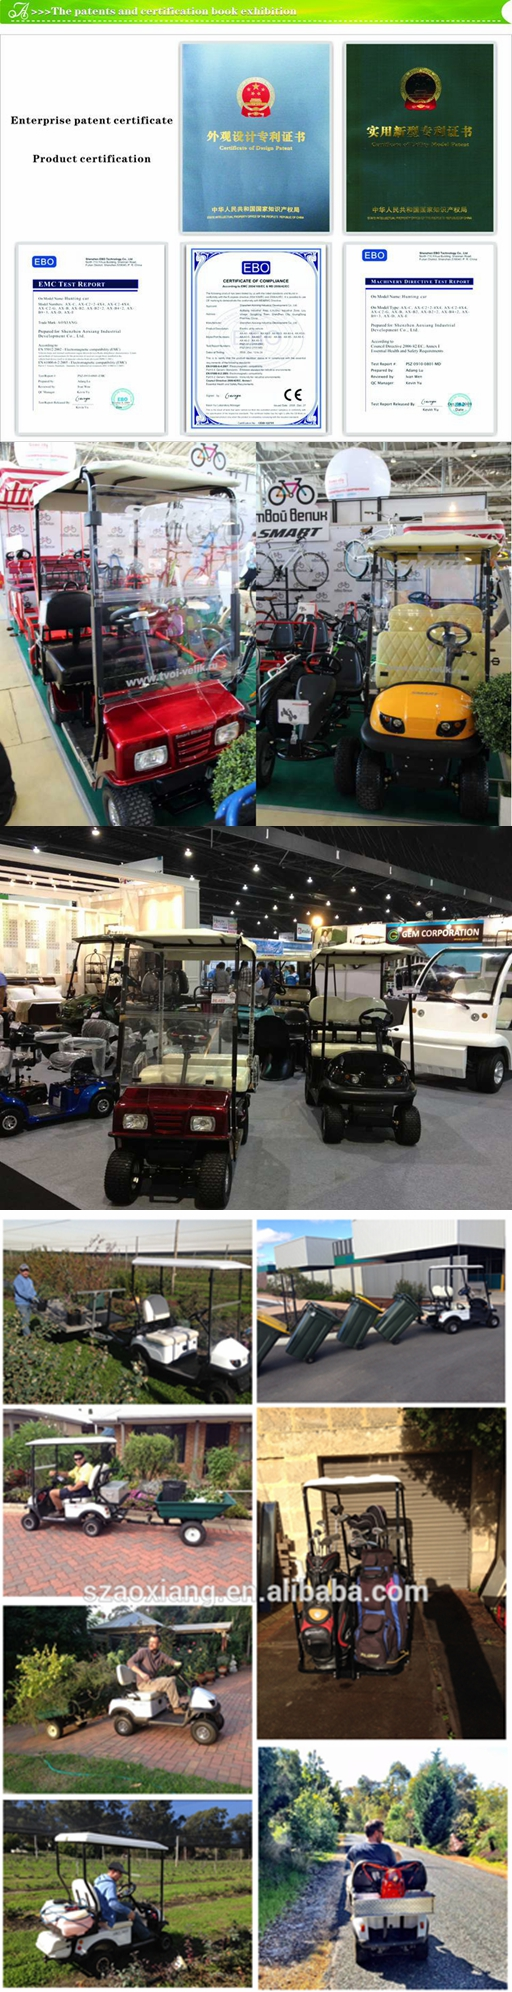 Aoxiang Golf Cart Service.jpg